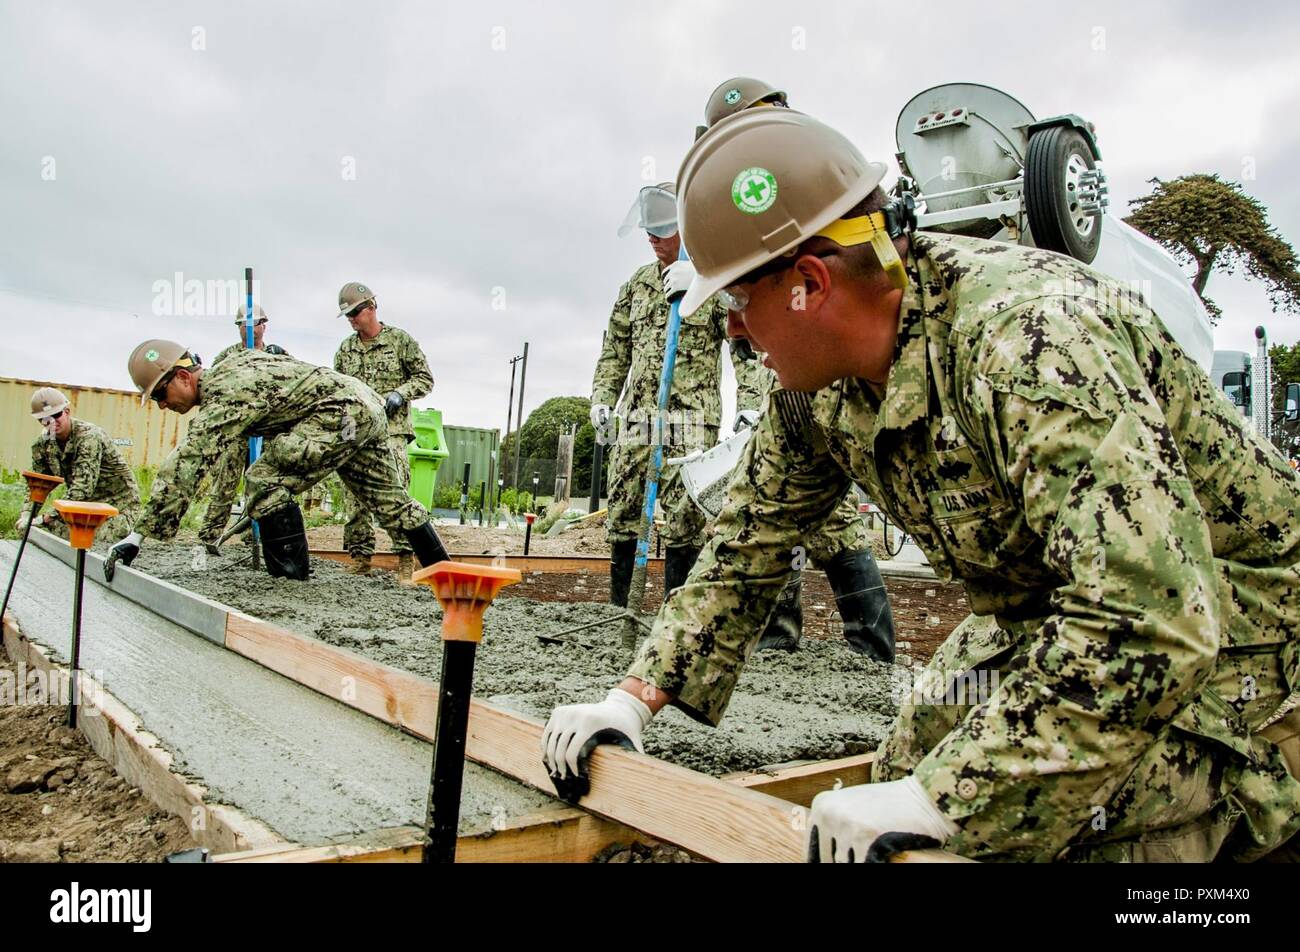 PORT HUENEME, Ca. (JUNE 10, 2017) – Sailors attached to Naval Mobile Construction Battalion 18 (NMCB 18), use a screed to level fresh poured concrete during a driveway extension project. NMCB 18 is building the concrete driveway extension on Naval Base Ventura County. The base will utilize the driveway for movement and transportation operations. U.S. Navy Photo by Mass Communication Specialist 2nd Class Ian Carver/RELEASED). - Stock Image